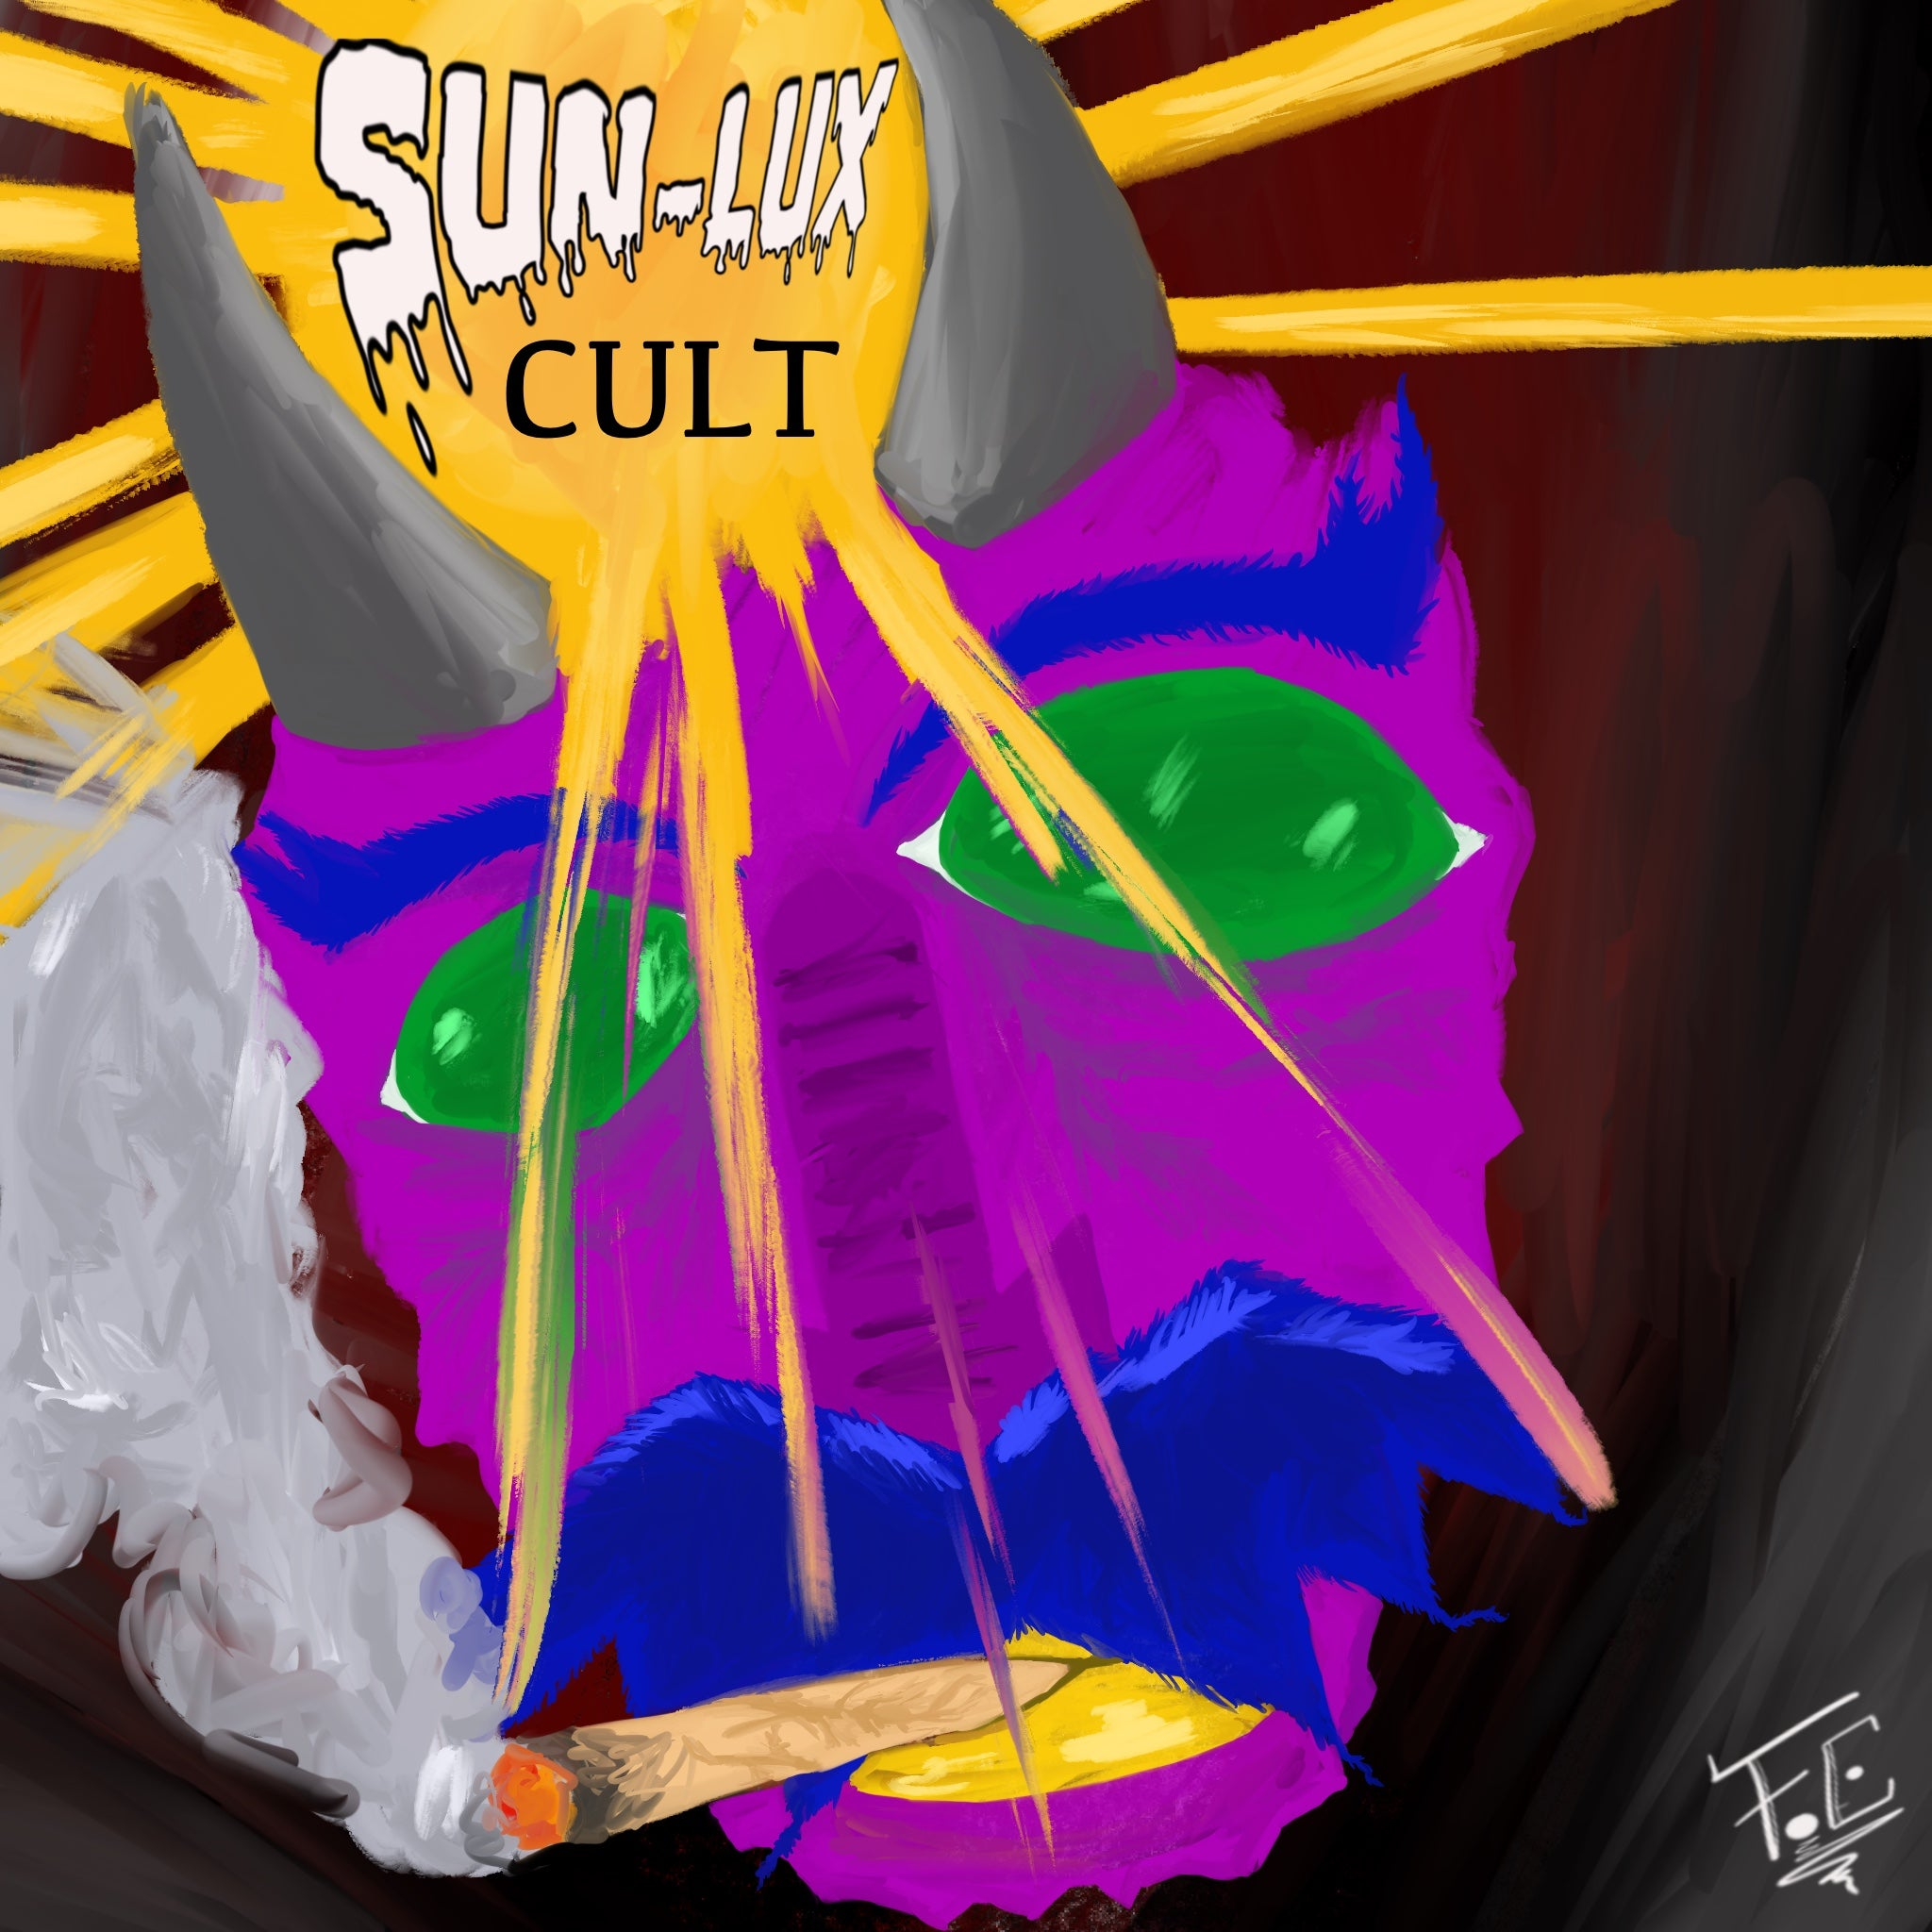 SUN-LuX CULT POSTER